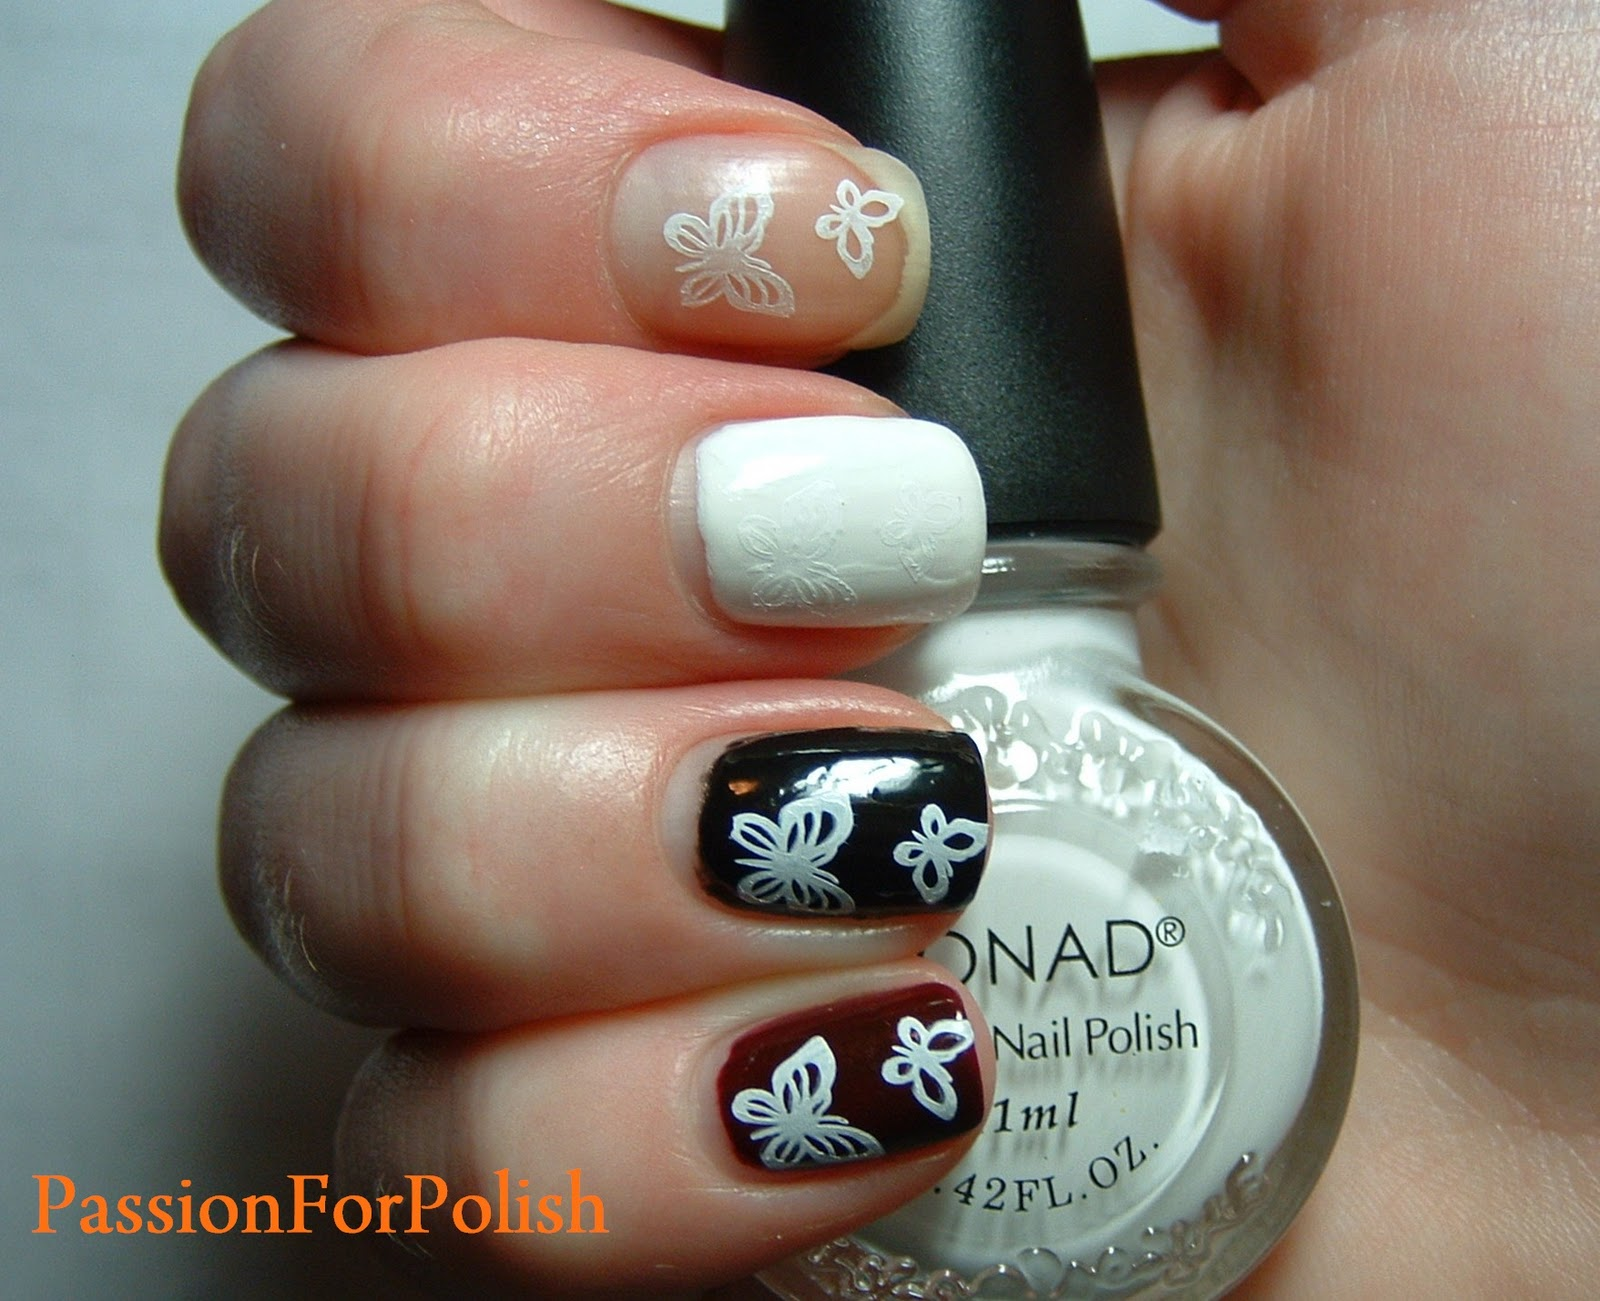 For more Konad Special Polish and Konad Princess Special Polish swatches see Siobhan's post at The Nailphile.